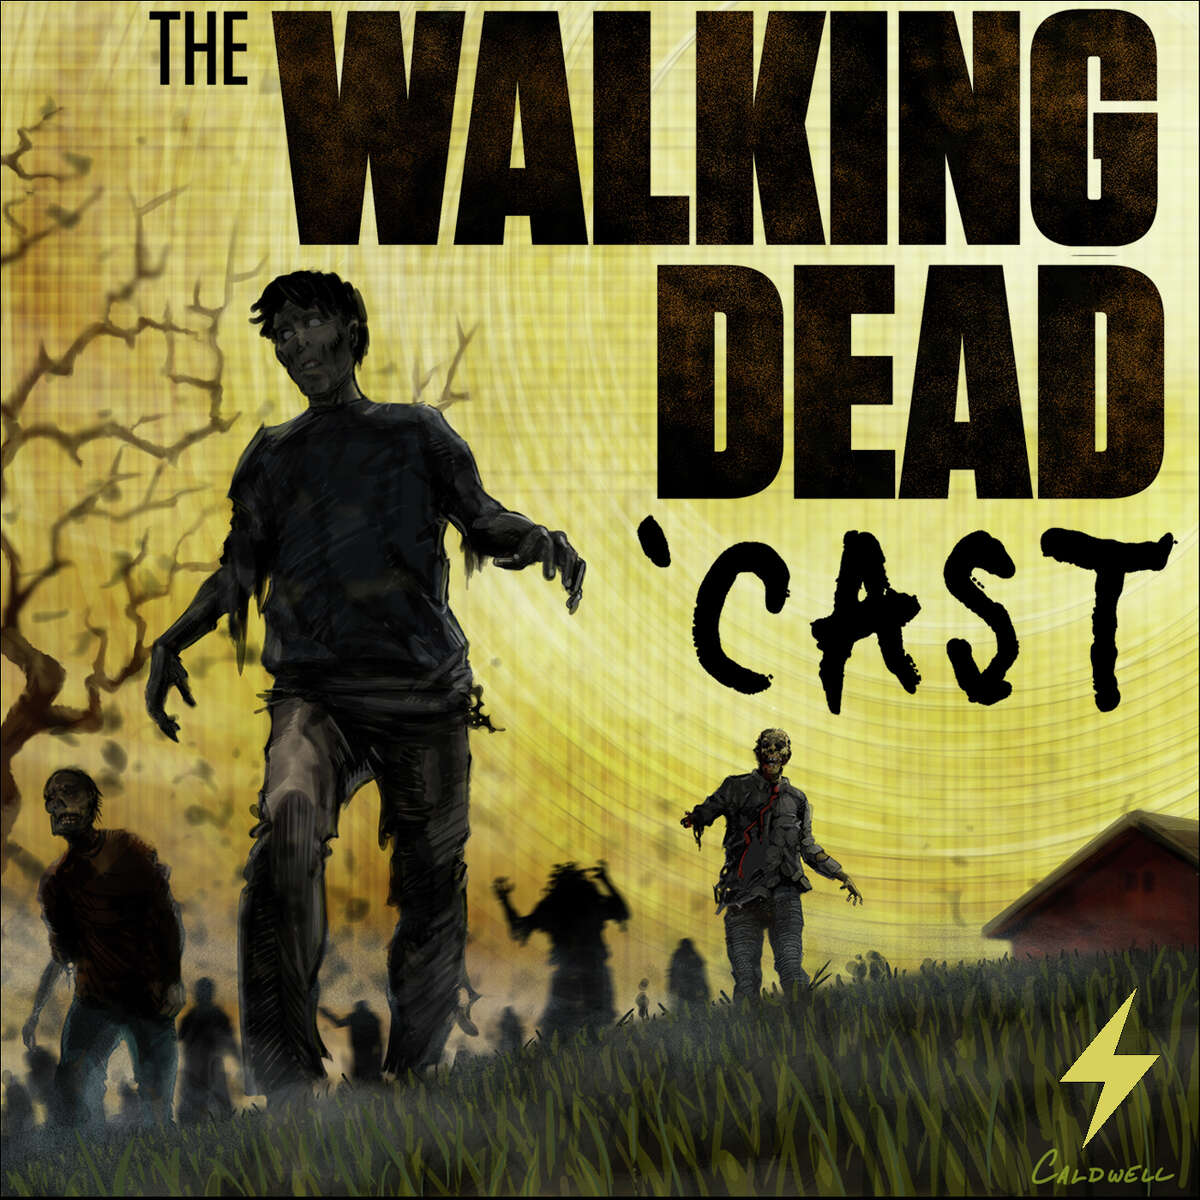 """For """"The Walking Deadcast,"""" superfans Jason Cabassi and Karen Koppett dig deep into the on-set stories behind the cult hit television show and regularly features exclusive interviews with its cast and creative talent. www.walkingdeadcast.com"""